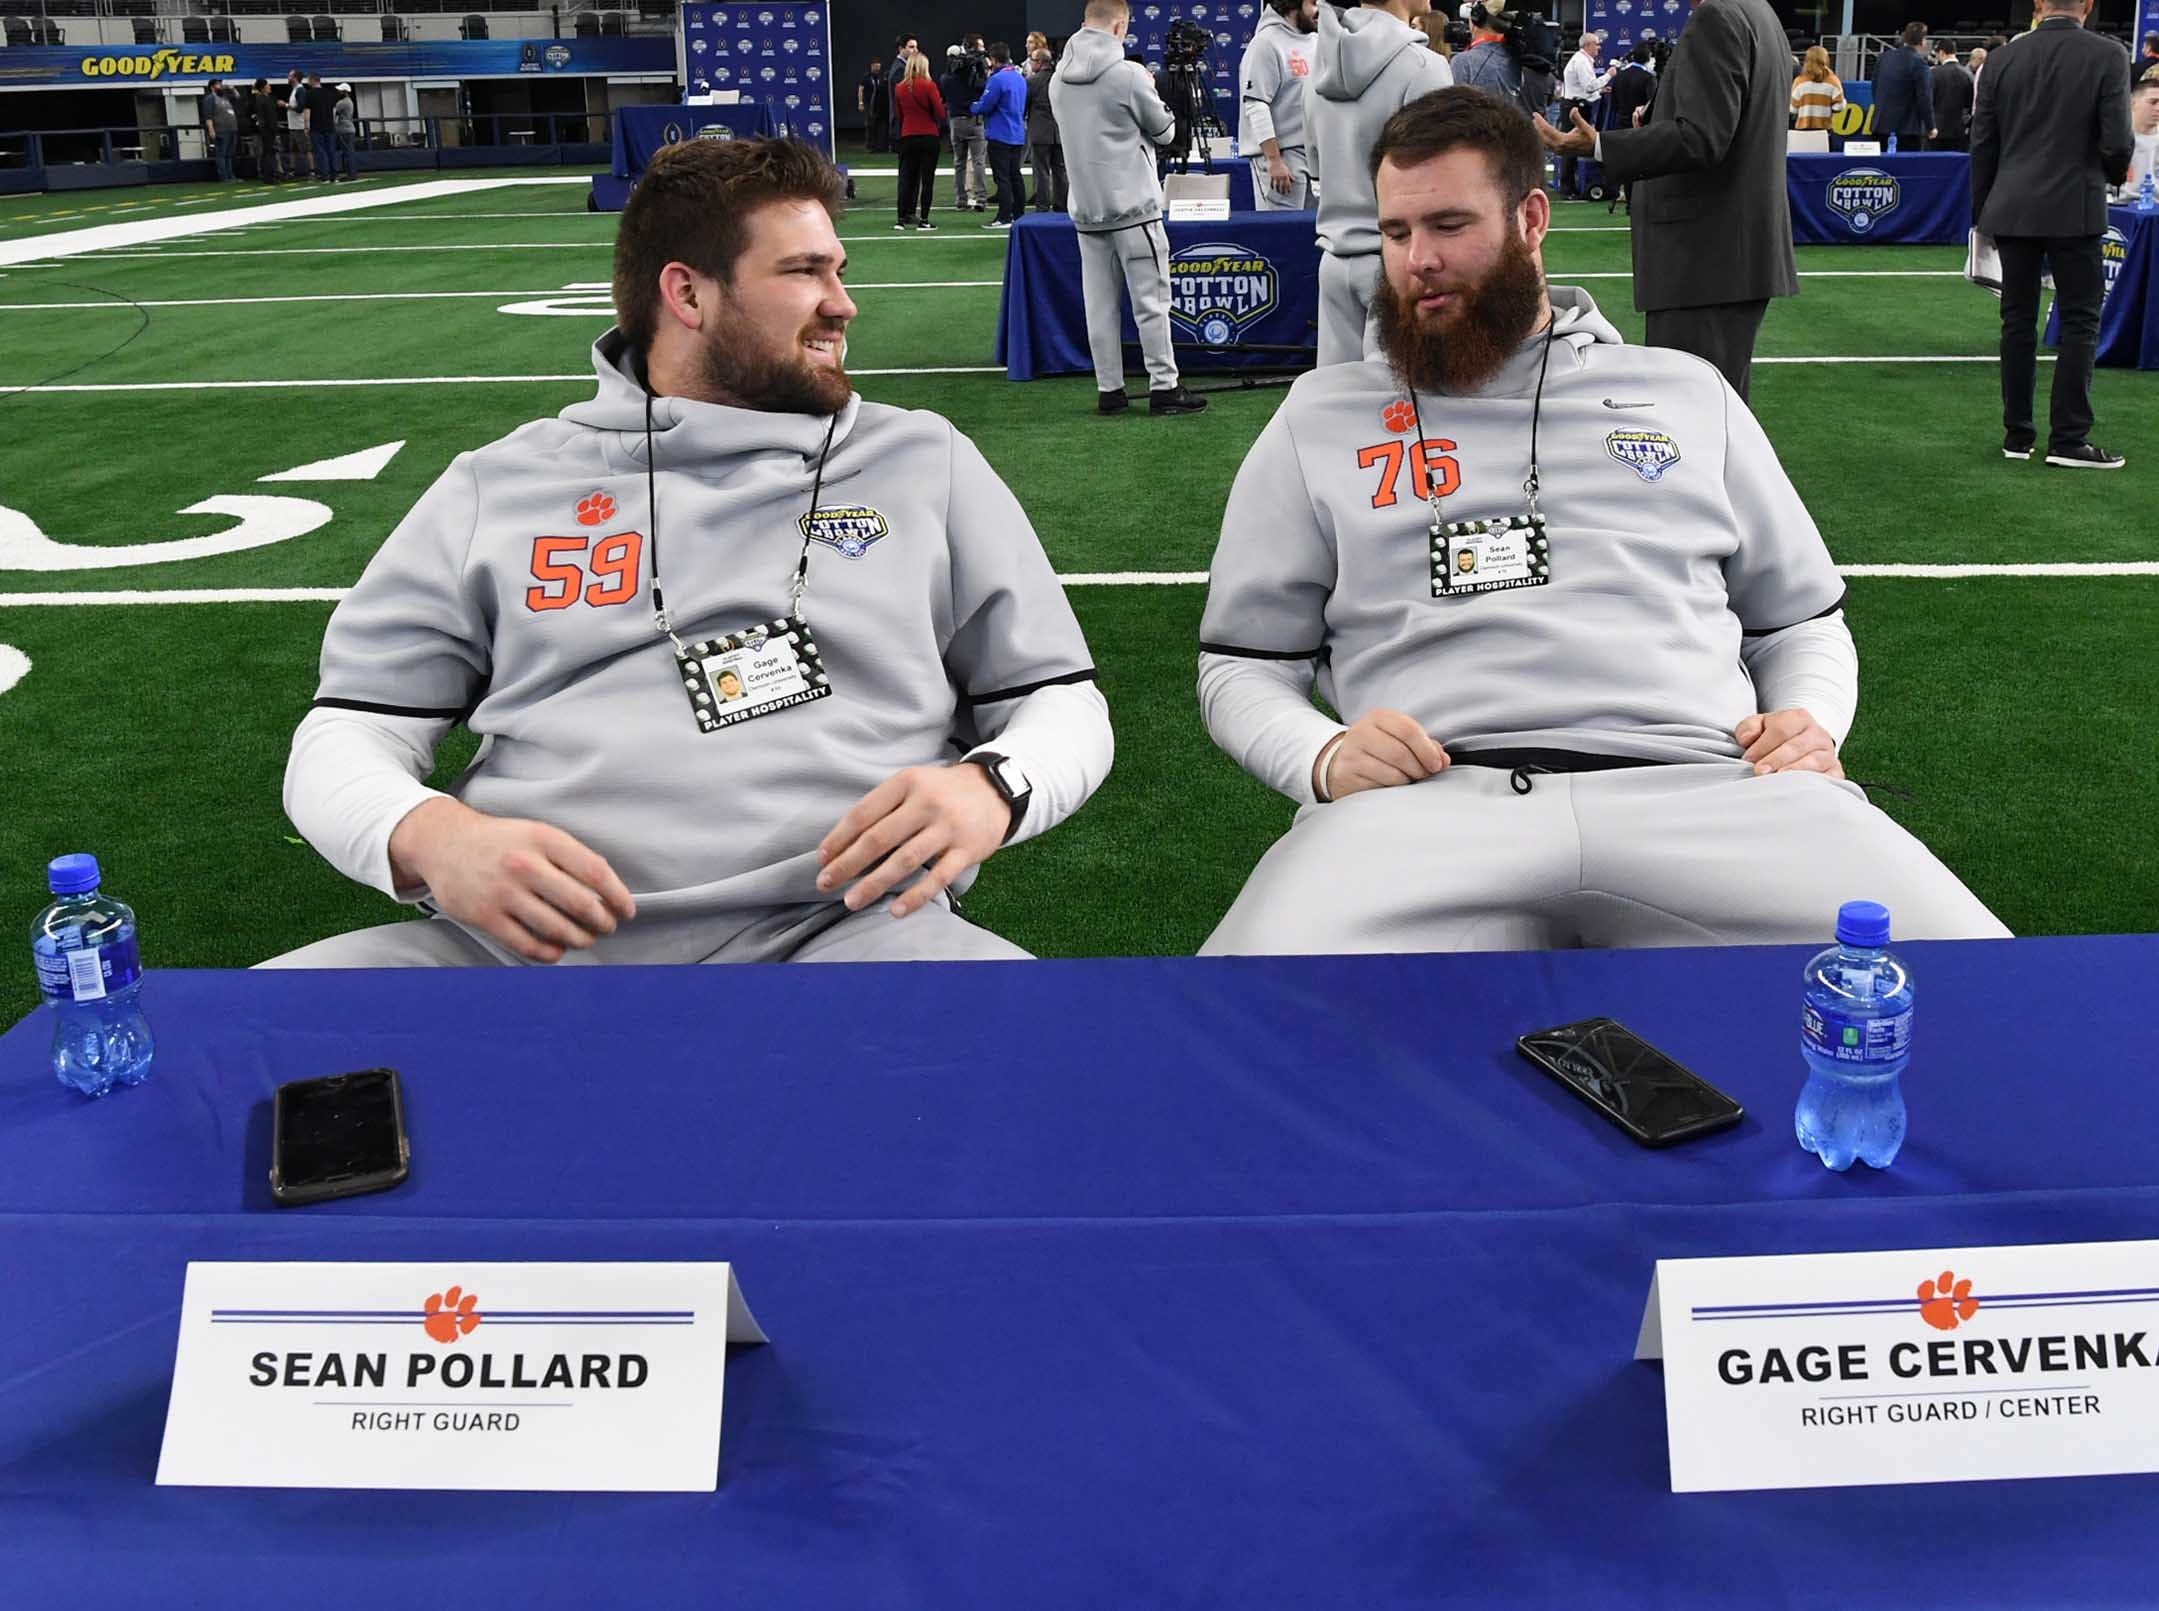 Clemson offensive lineman Gage Cervenka, left, and offensive lineman Sean Pollard during Media Day for Clemson and Notre Dame at the AT&T Stadium in Dallas December 27, 2018.